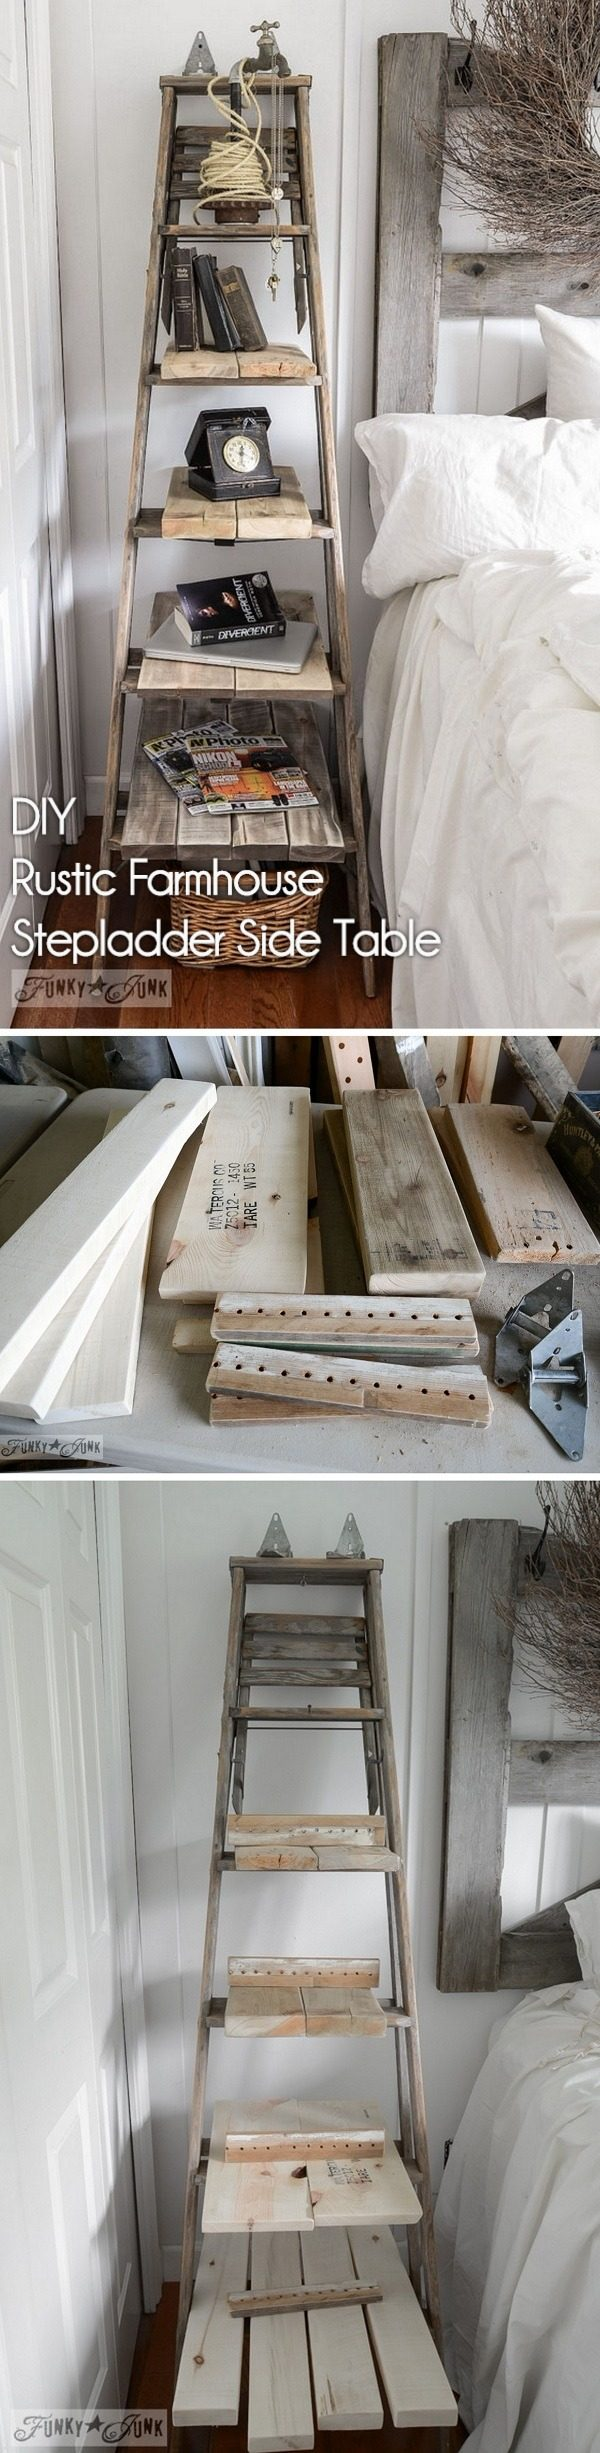 Check out how to make a #DIY rustic stepladder for #farmhouse style home decor #HomeDecorIdeas #RusticDecor #BedroomIdeas